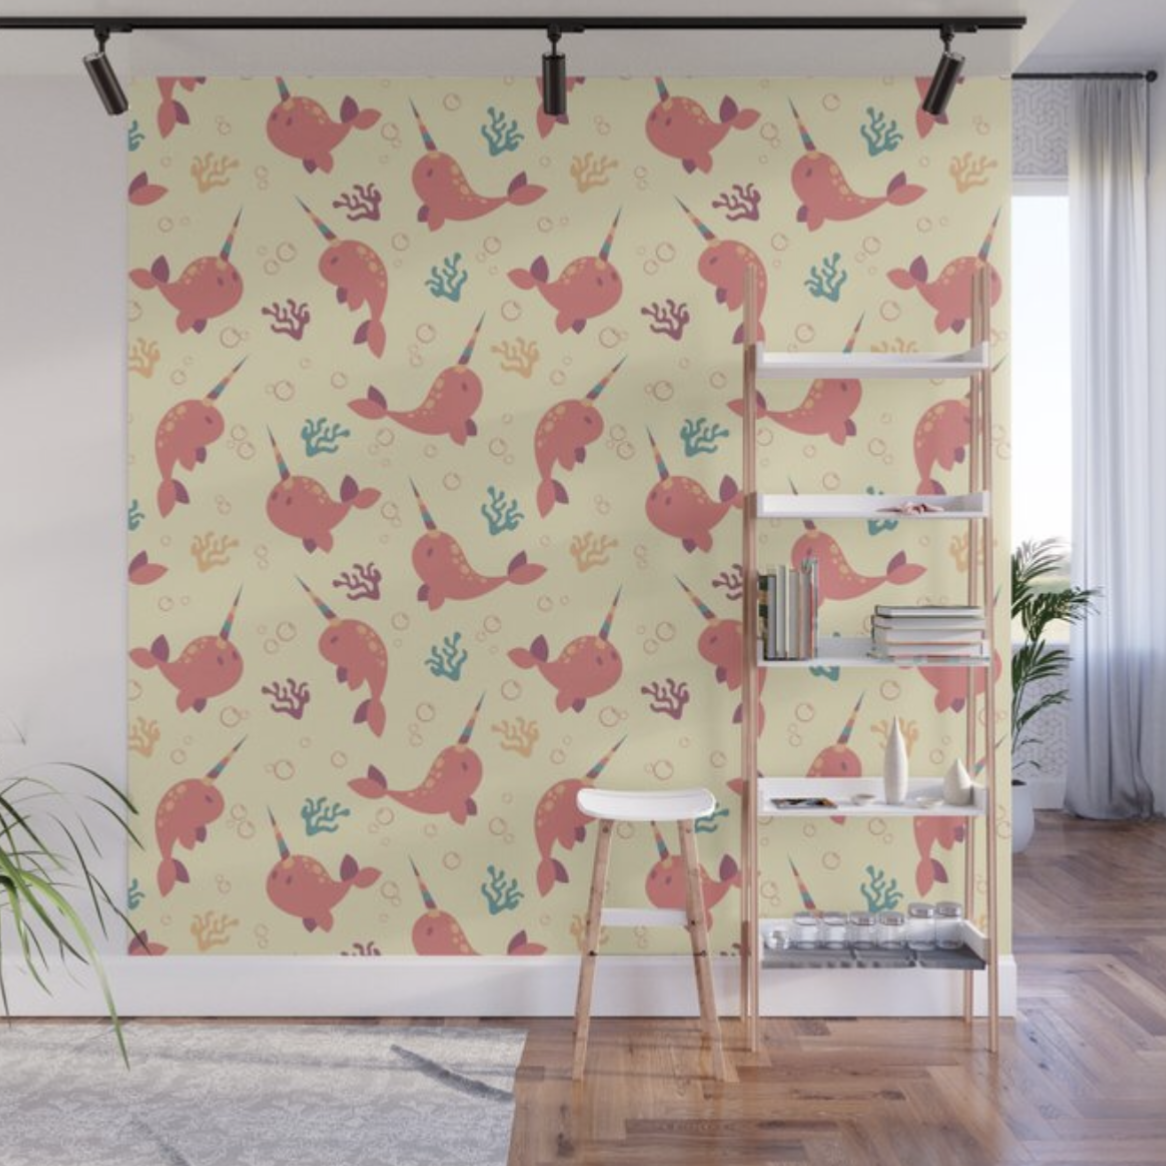 To the Window to the Narwhal wall mural from Society6